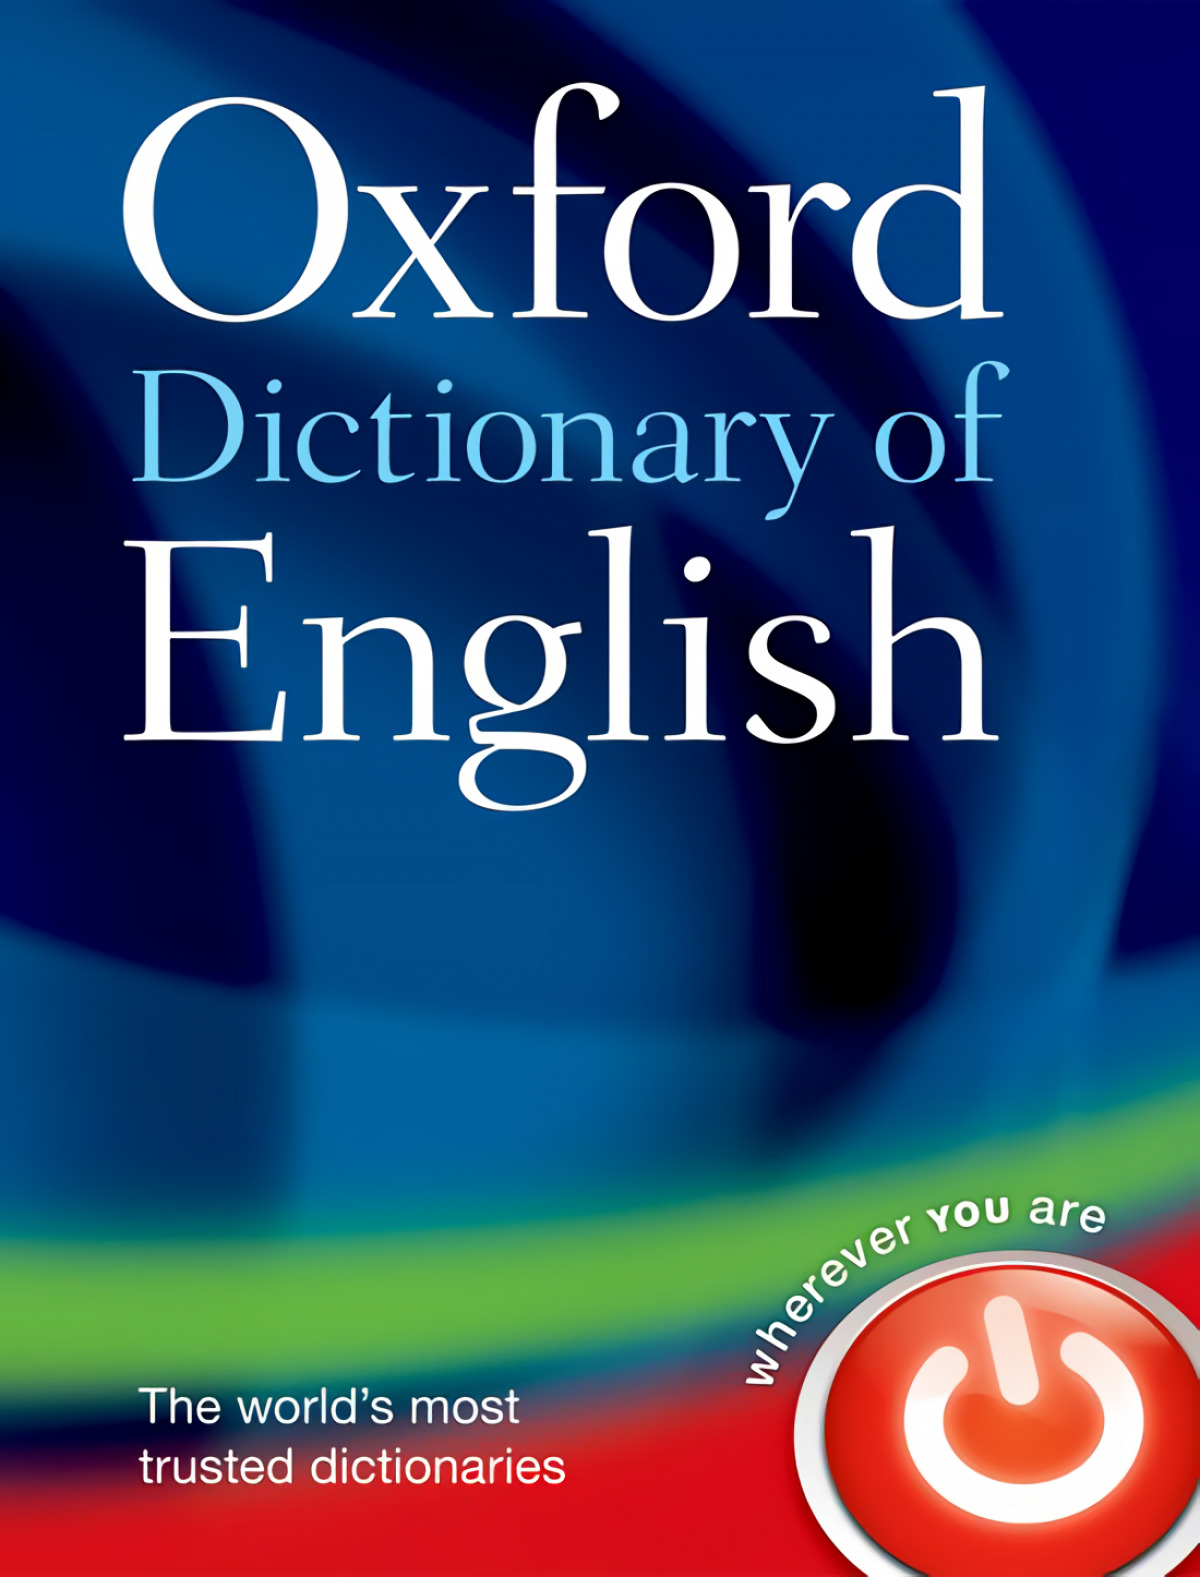 Oxford Dictionary of English 9780199571123